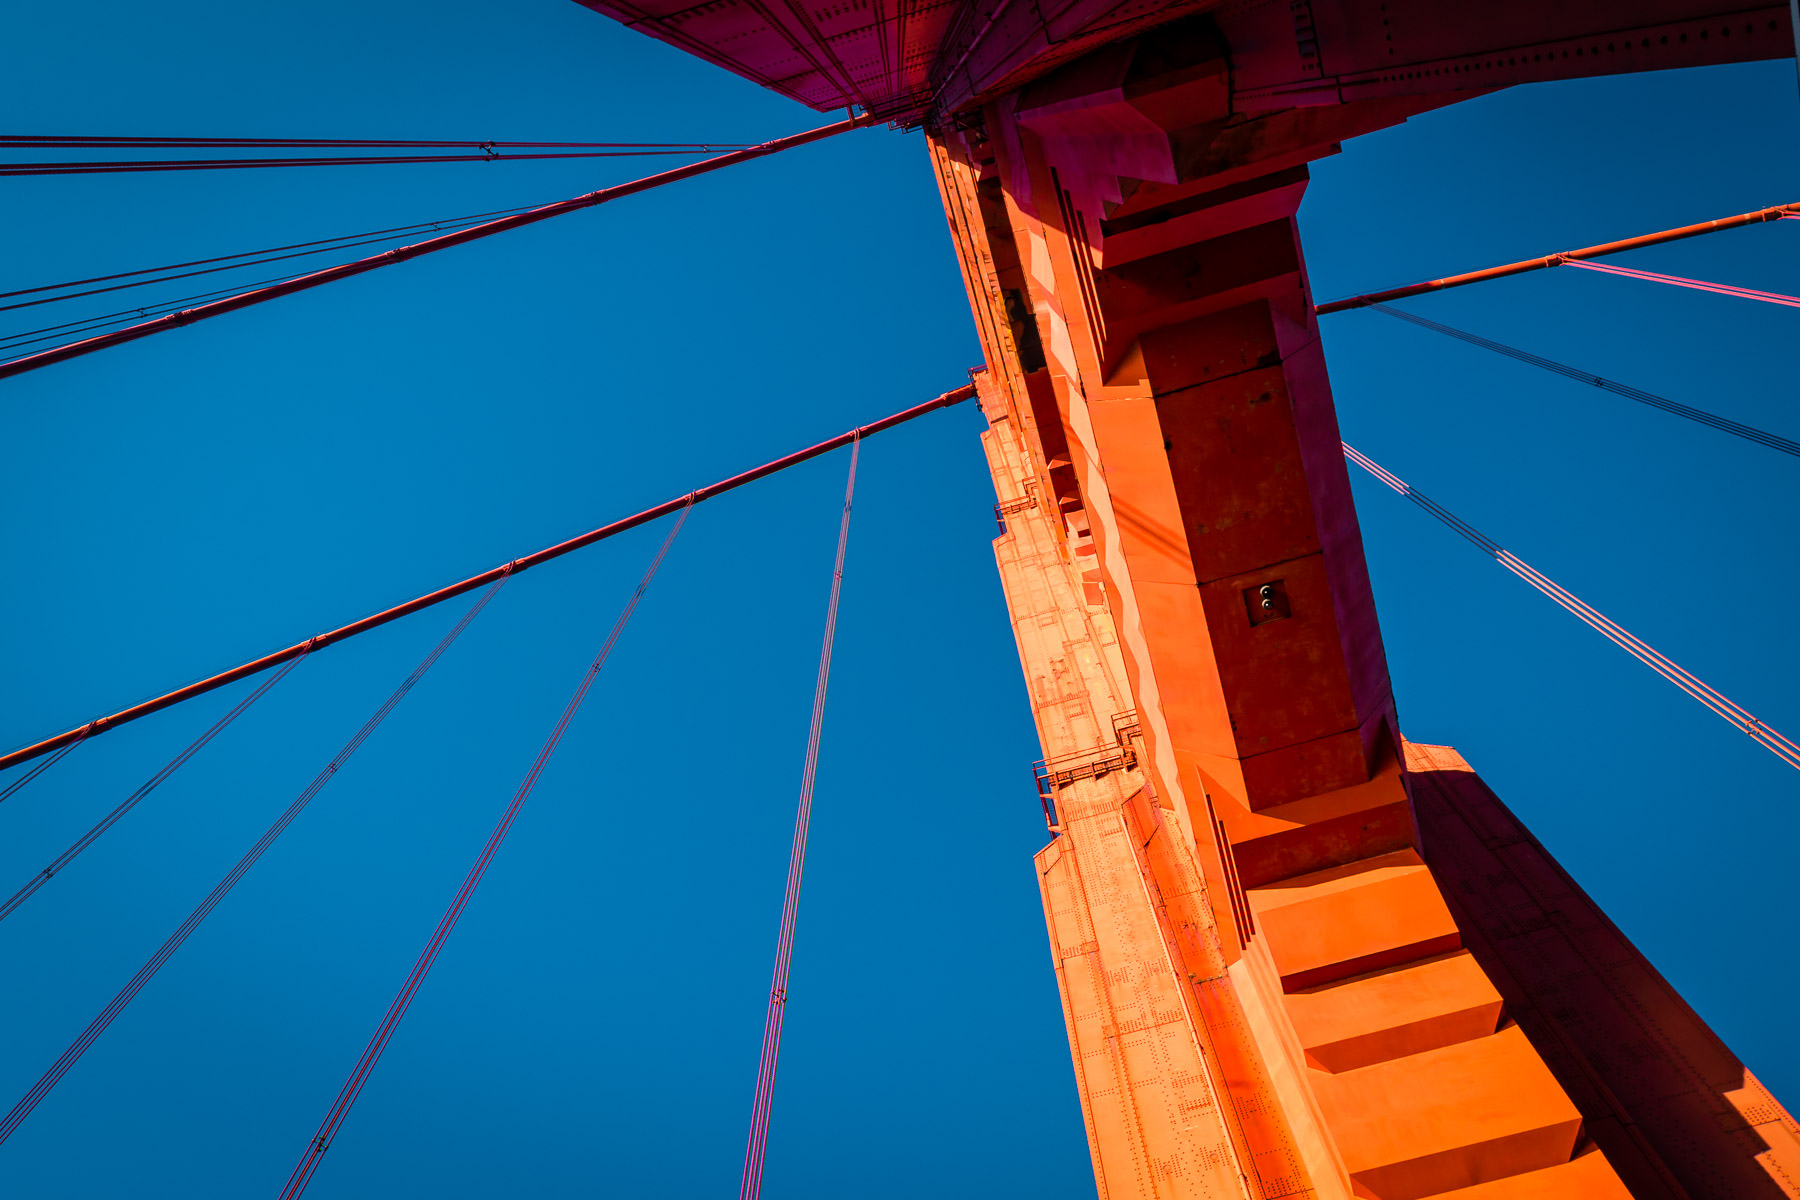 The 746-foot-tall south tower of the Golden Gate Bridge rises into the clear sky over San Francisco Bay.